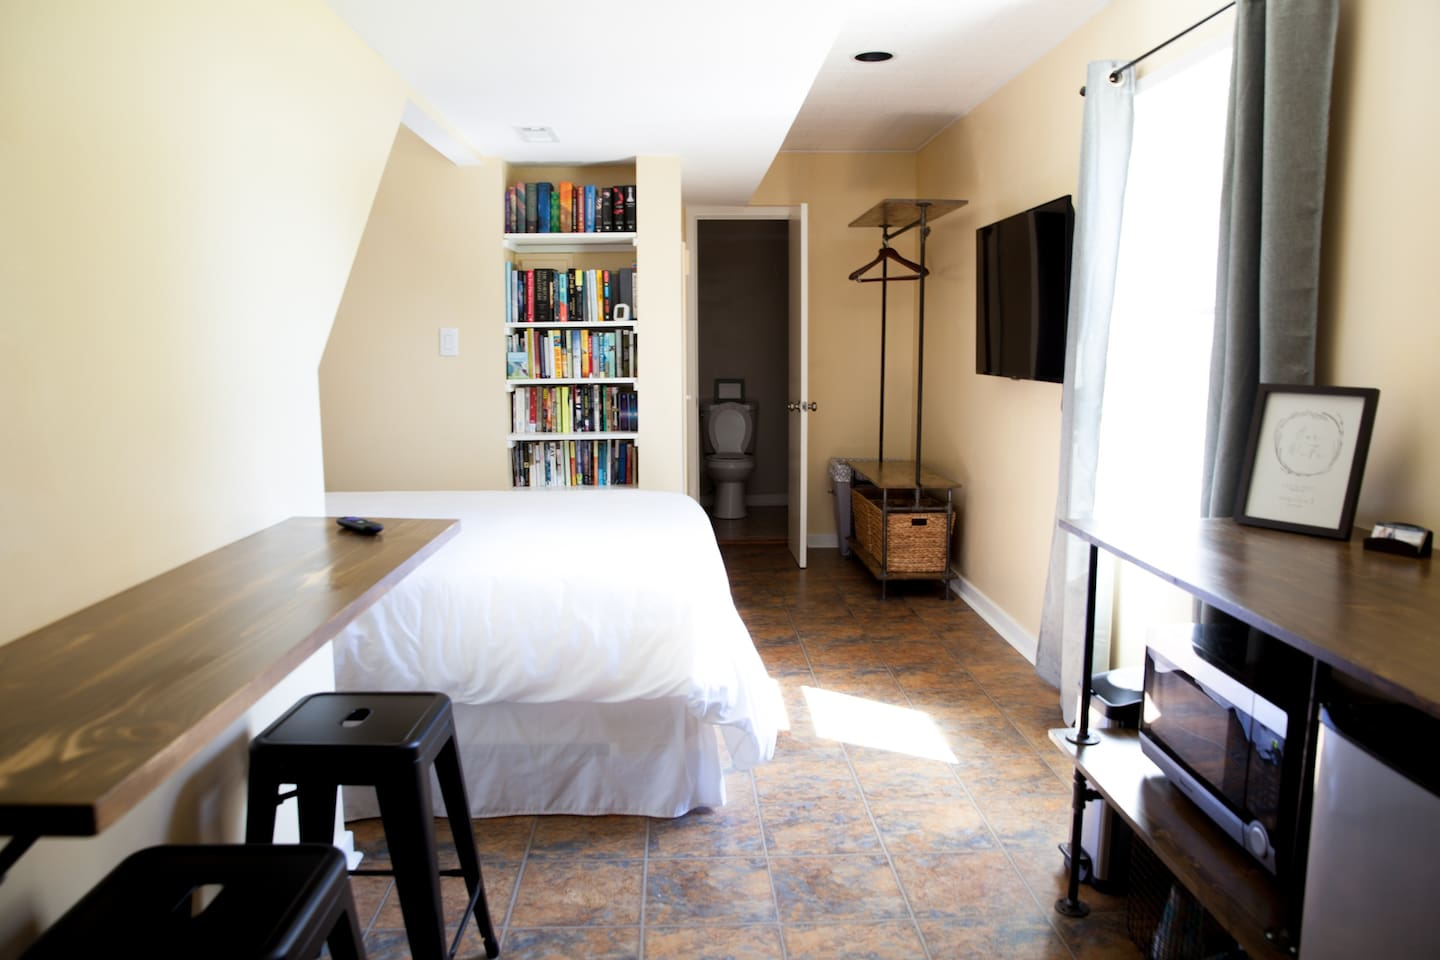 Studio style apartment with everything you need for a relaxing getaway!